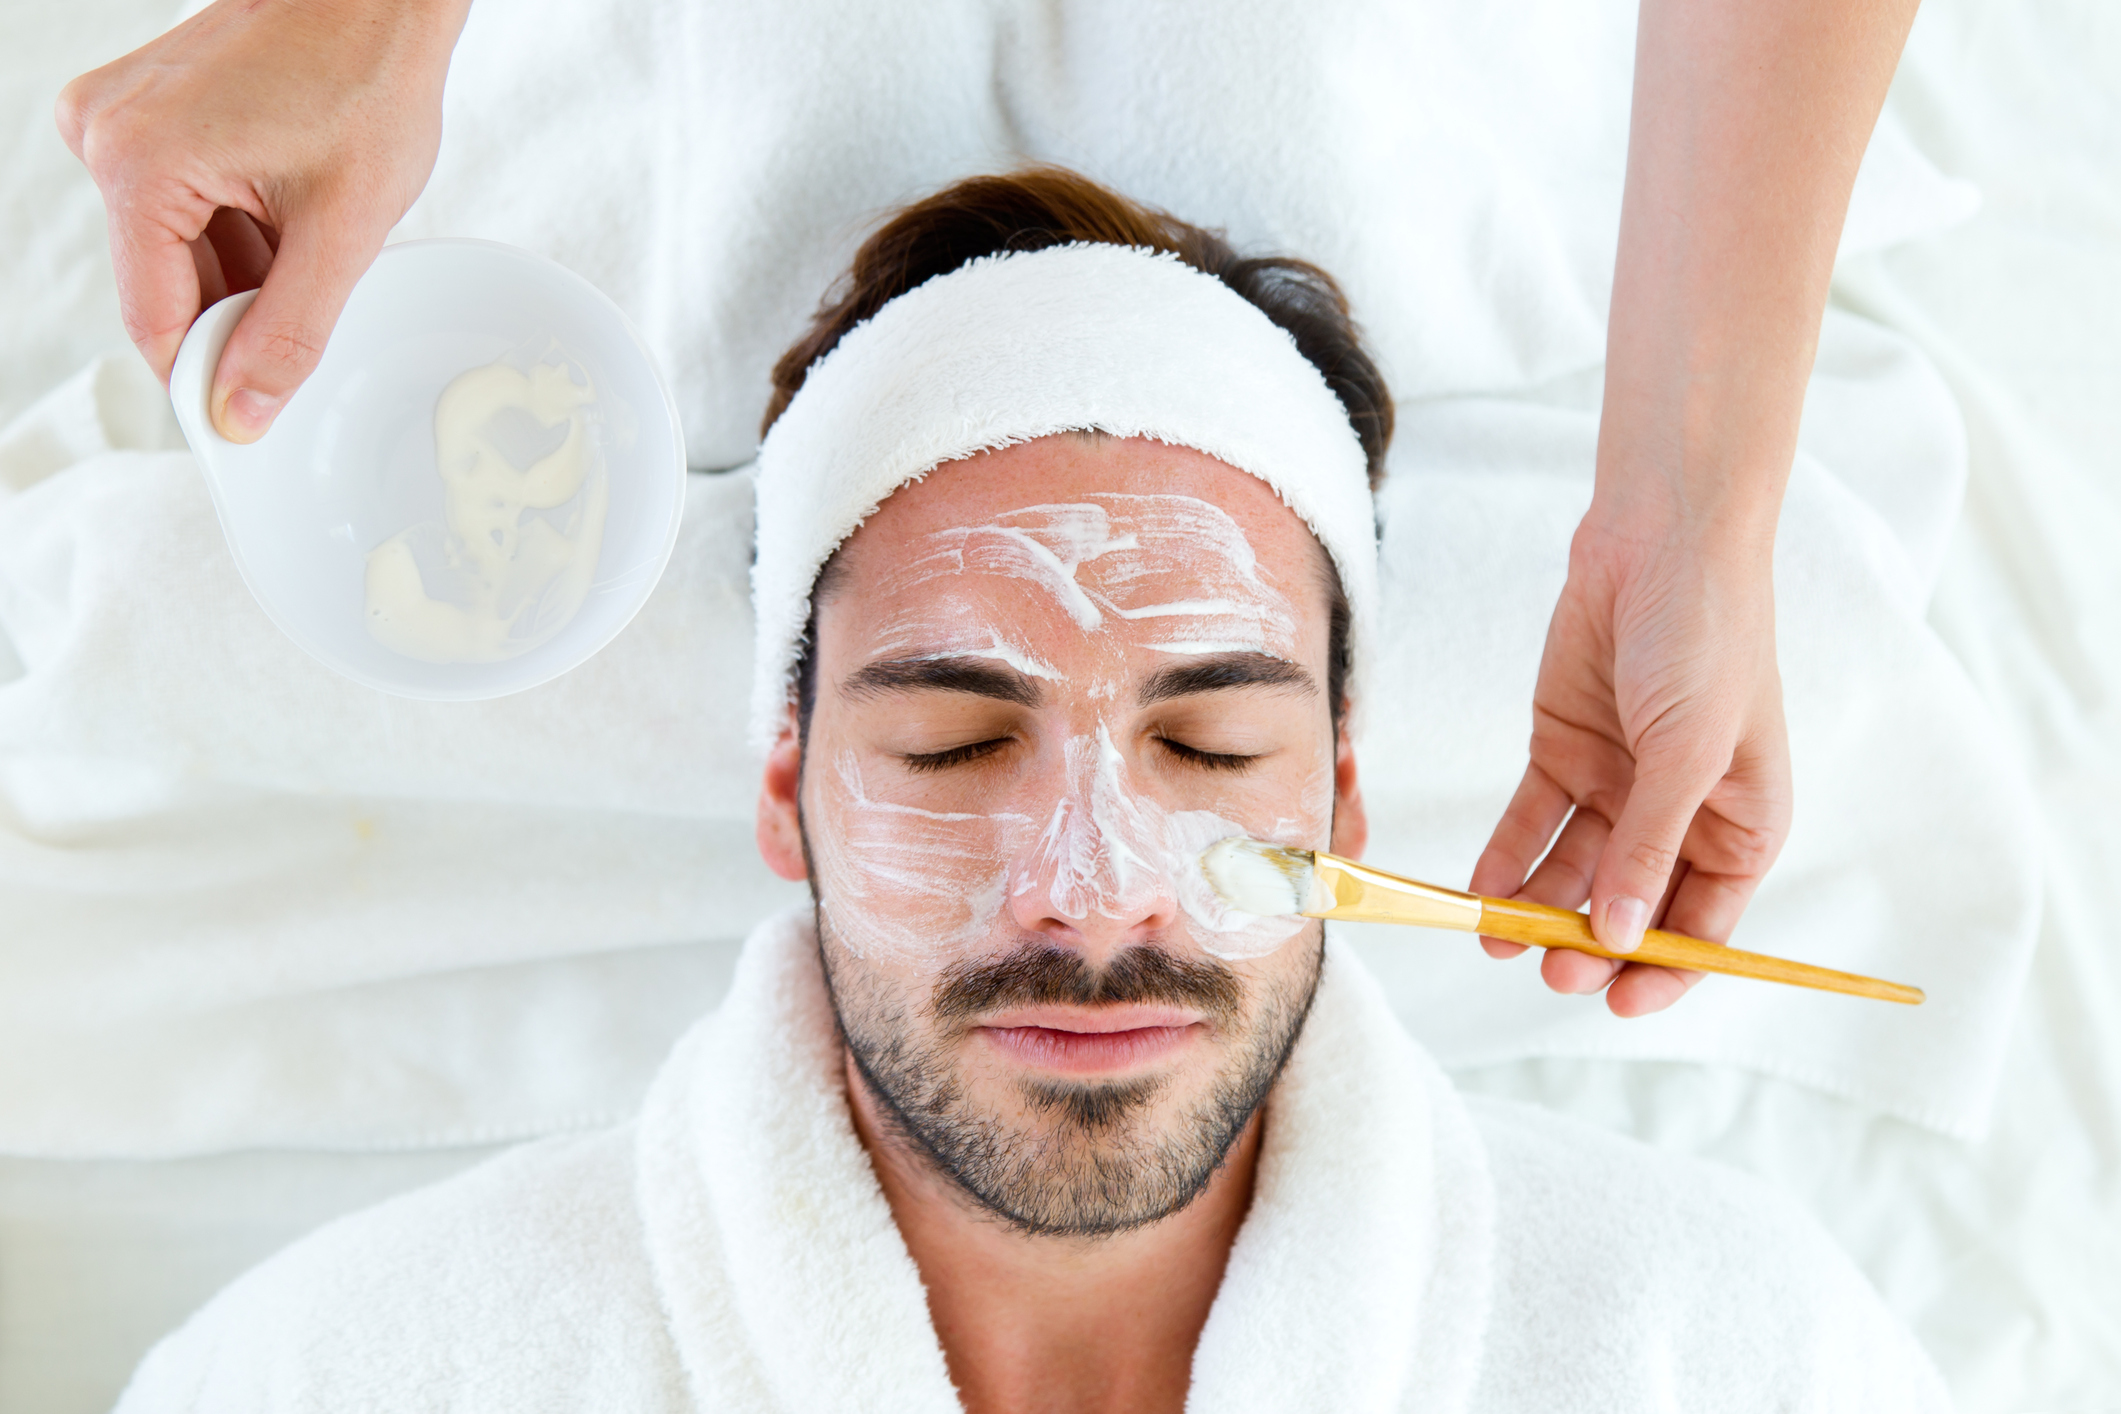 GENTLEMAN'S FACIAL - Treat those painful, embarrassing ingrown hairs and give your pores the ultimate deep clean with our powerful just-for-men facial.Leaves your face feeling cleansed, smooth, hydrated and healthy. Approx: 50 minutes $110